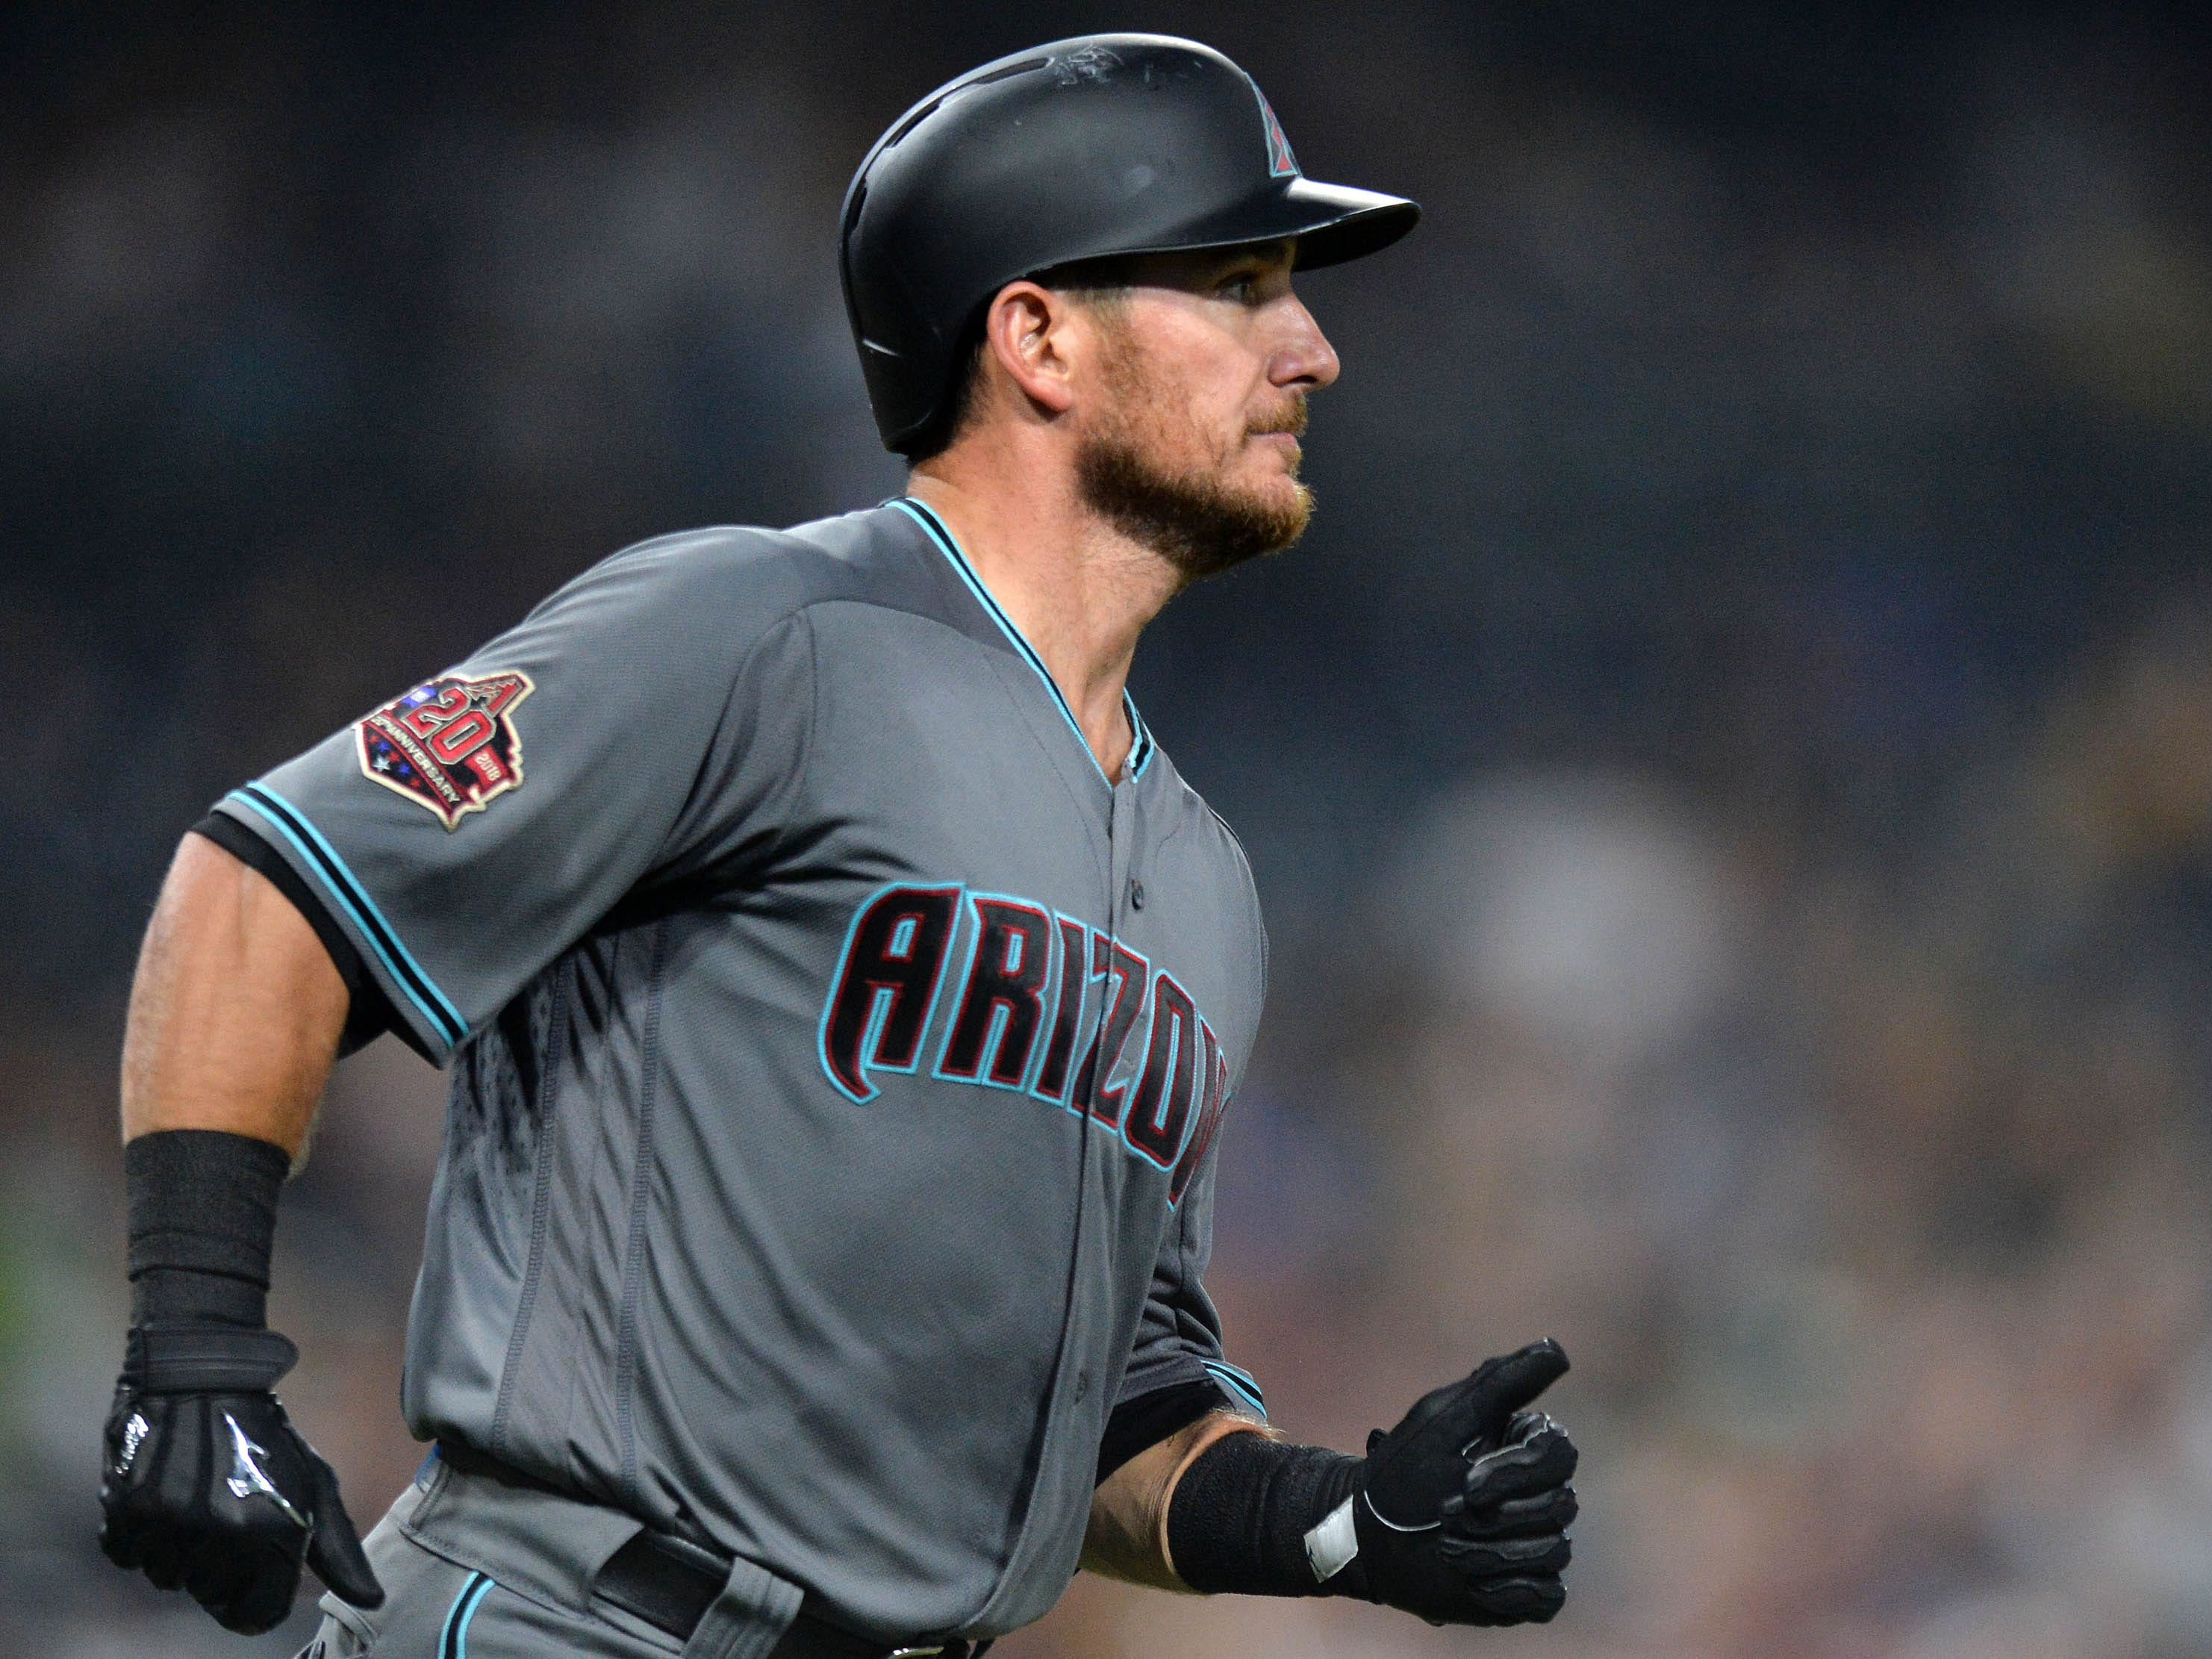 Aug 17, 2018: Arizona Diamondbacks catcher Jeff Mathis (2) jogs to first with an RBI single during the second inning against the San Diego Padres at Petco Park.